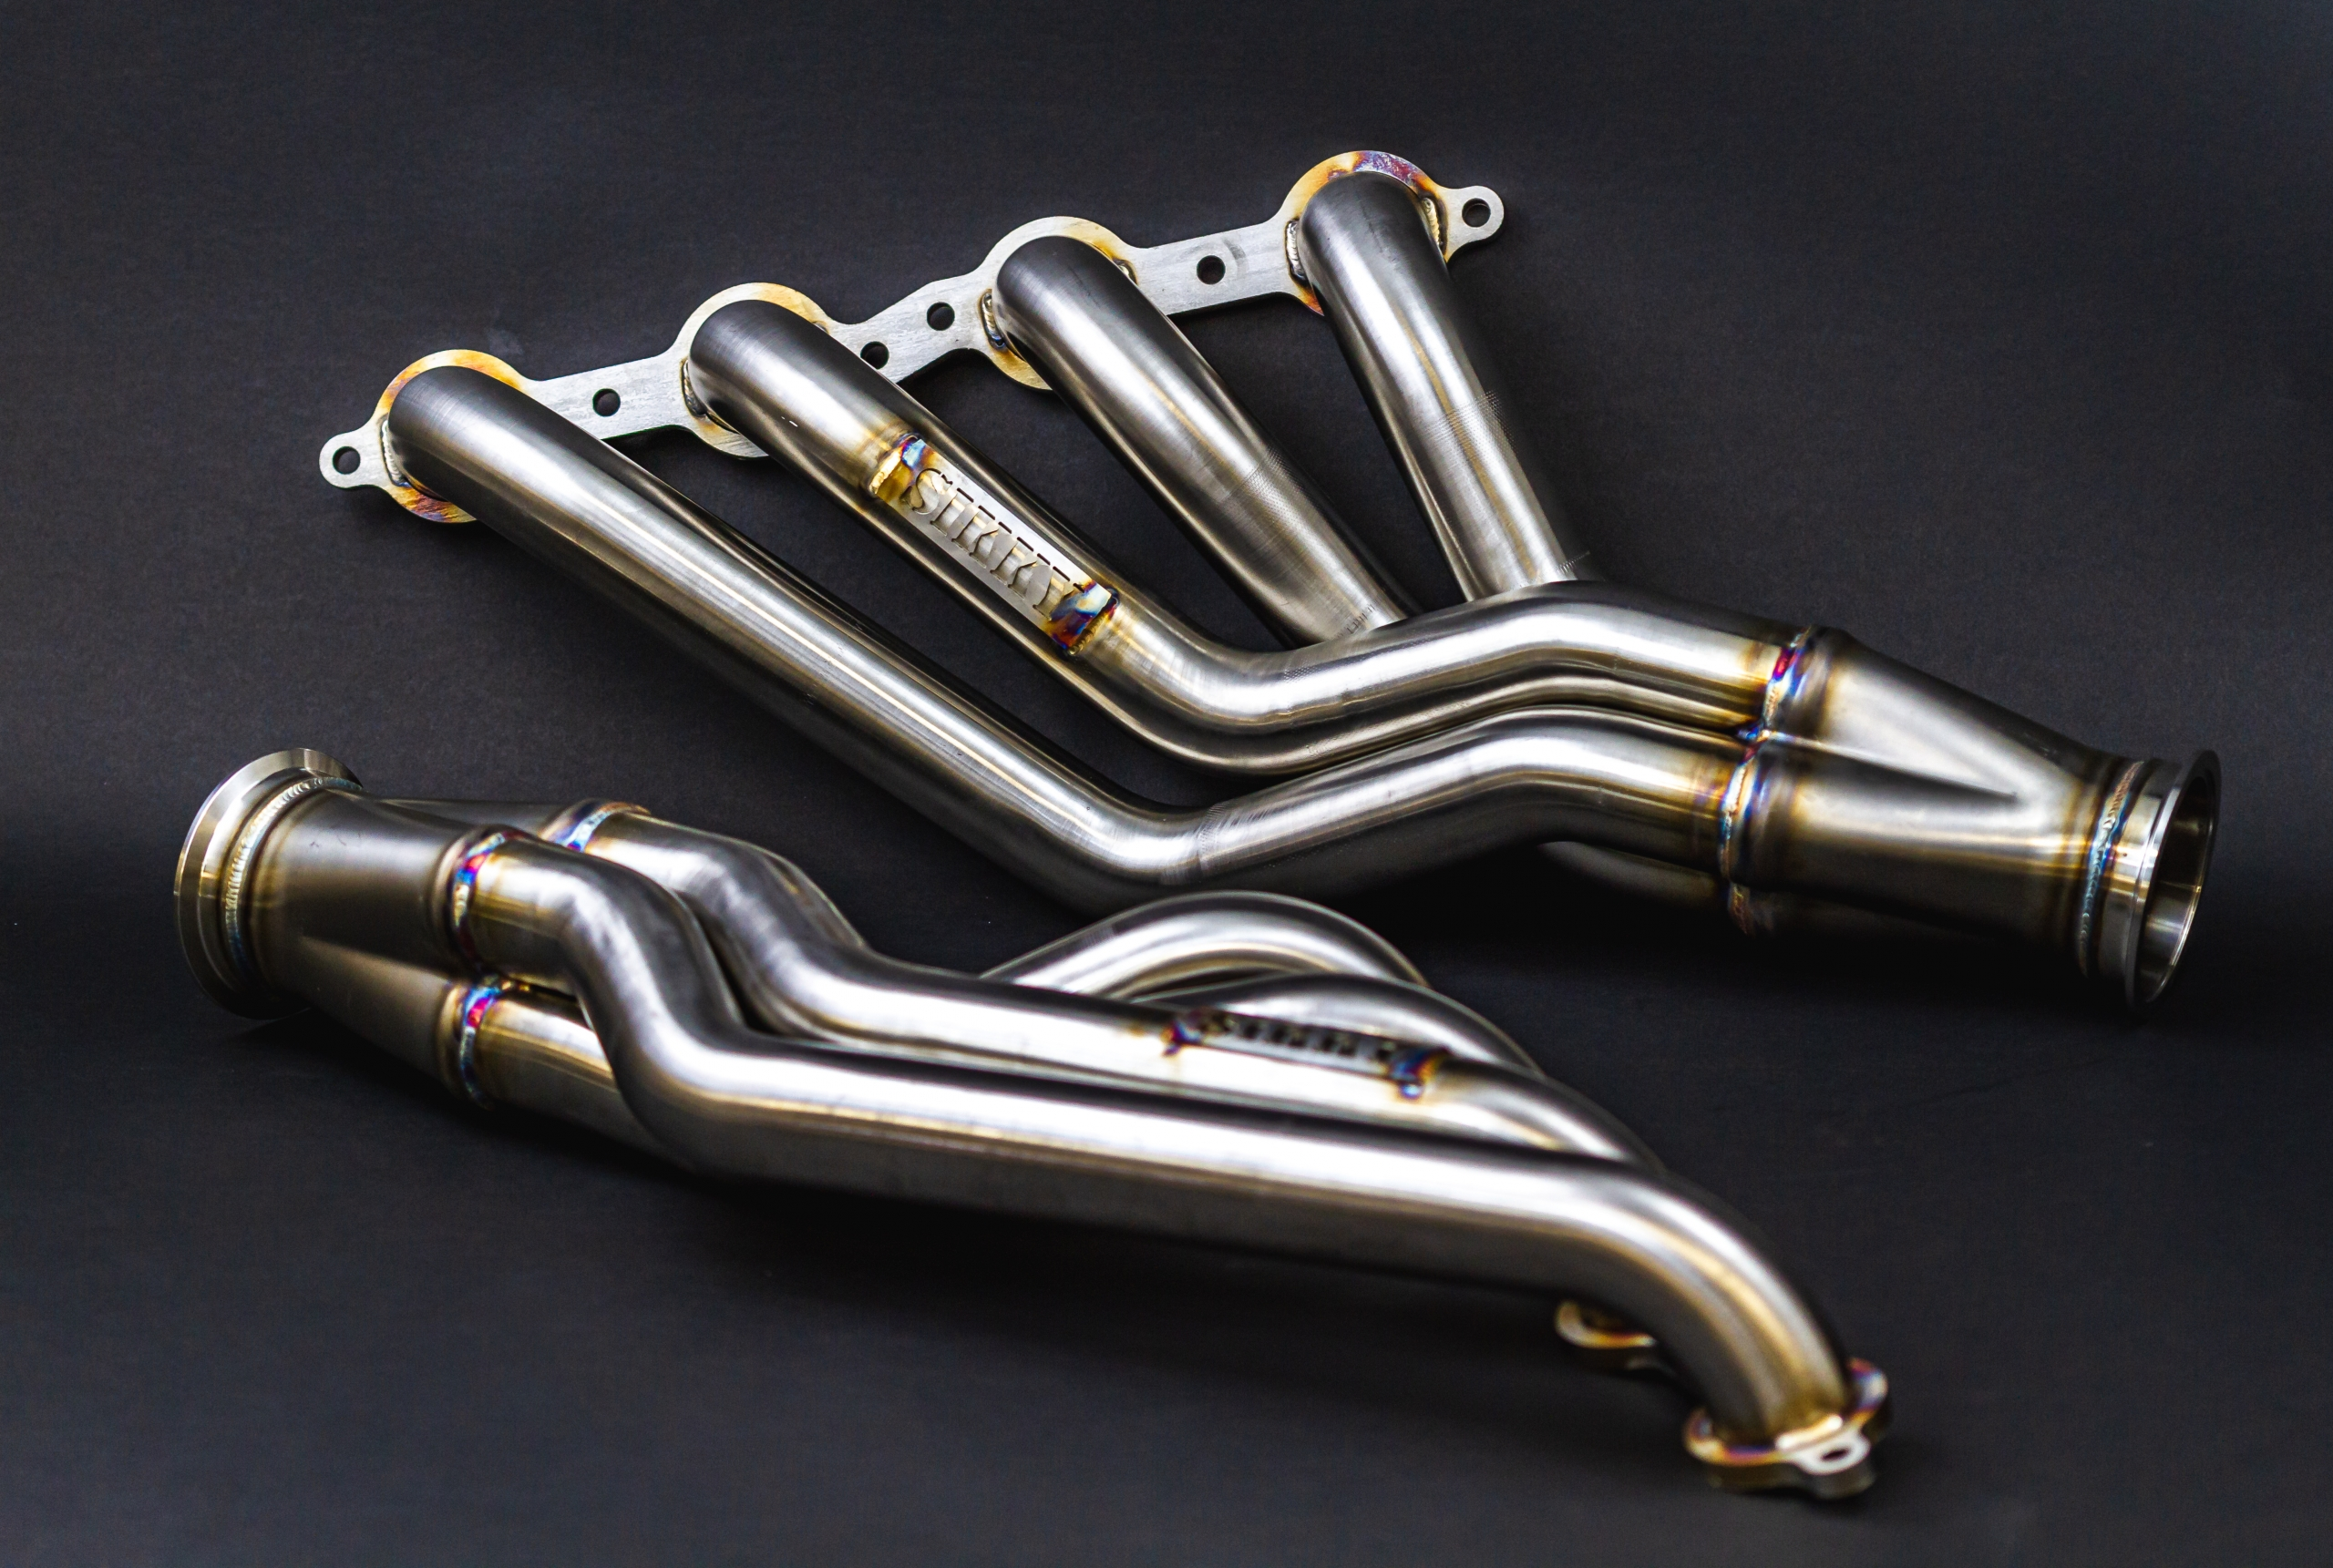 Sikky Infiniti G37 LS Swap Headers - Stainless Steel Pro Series